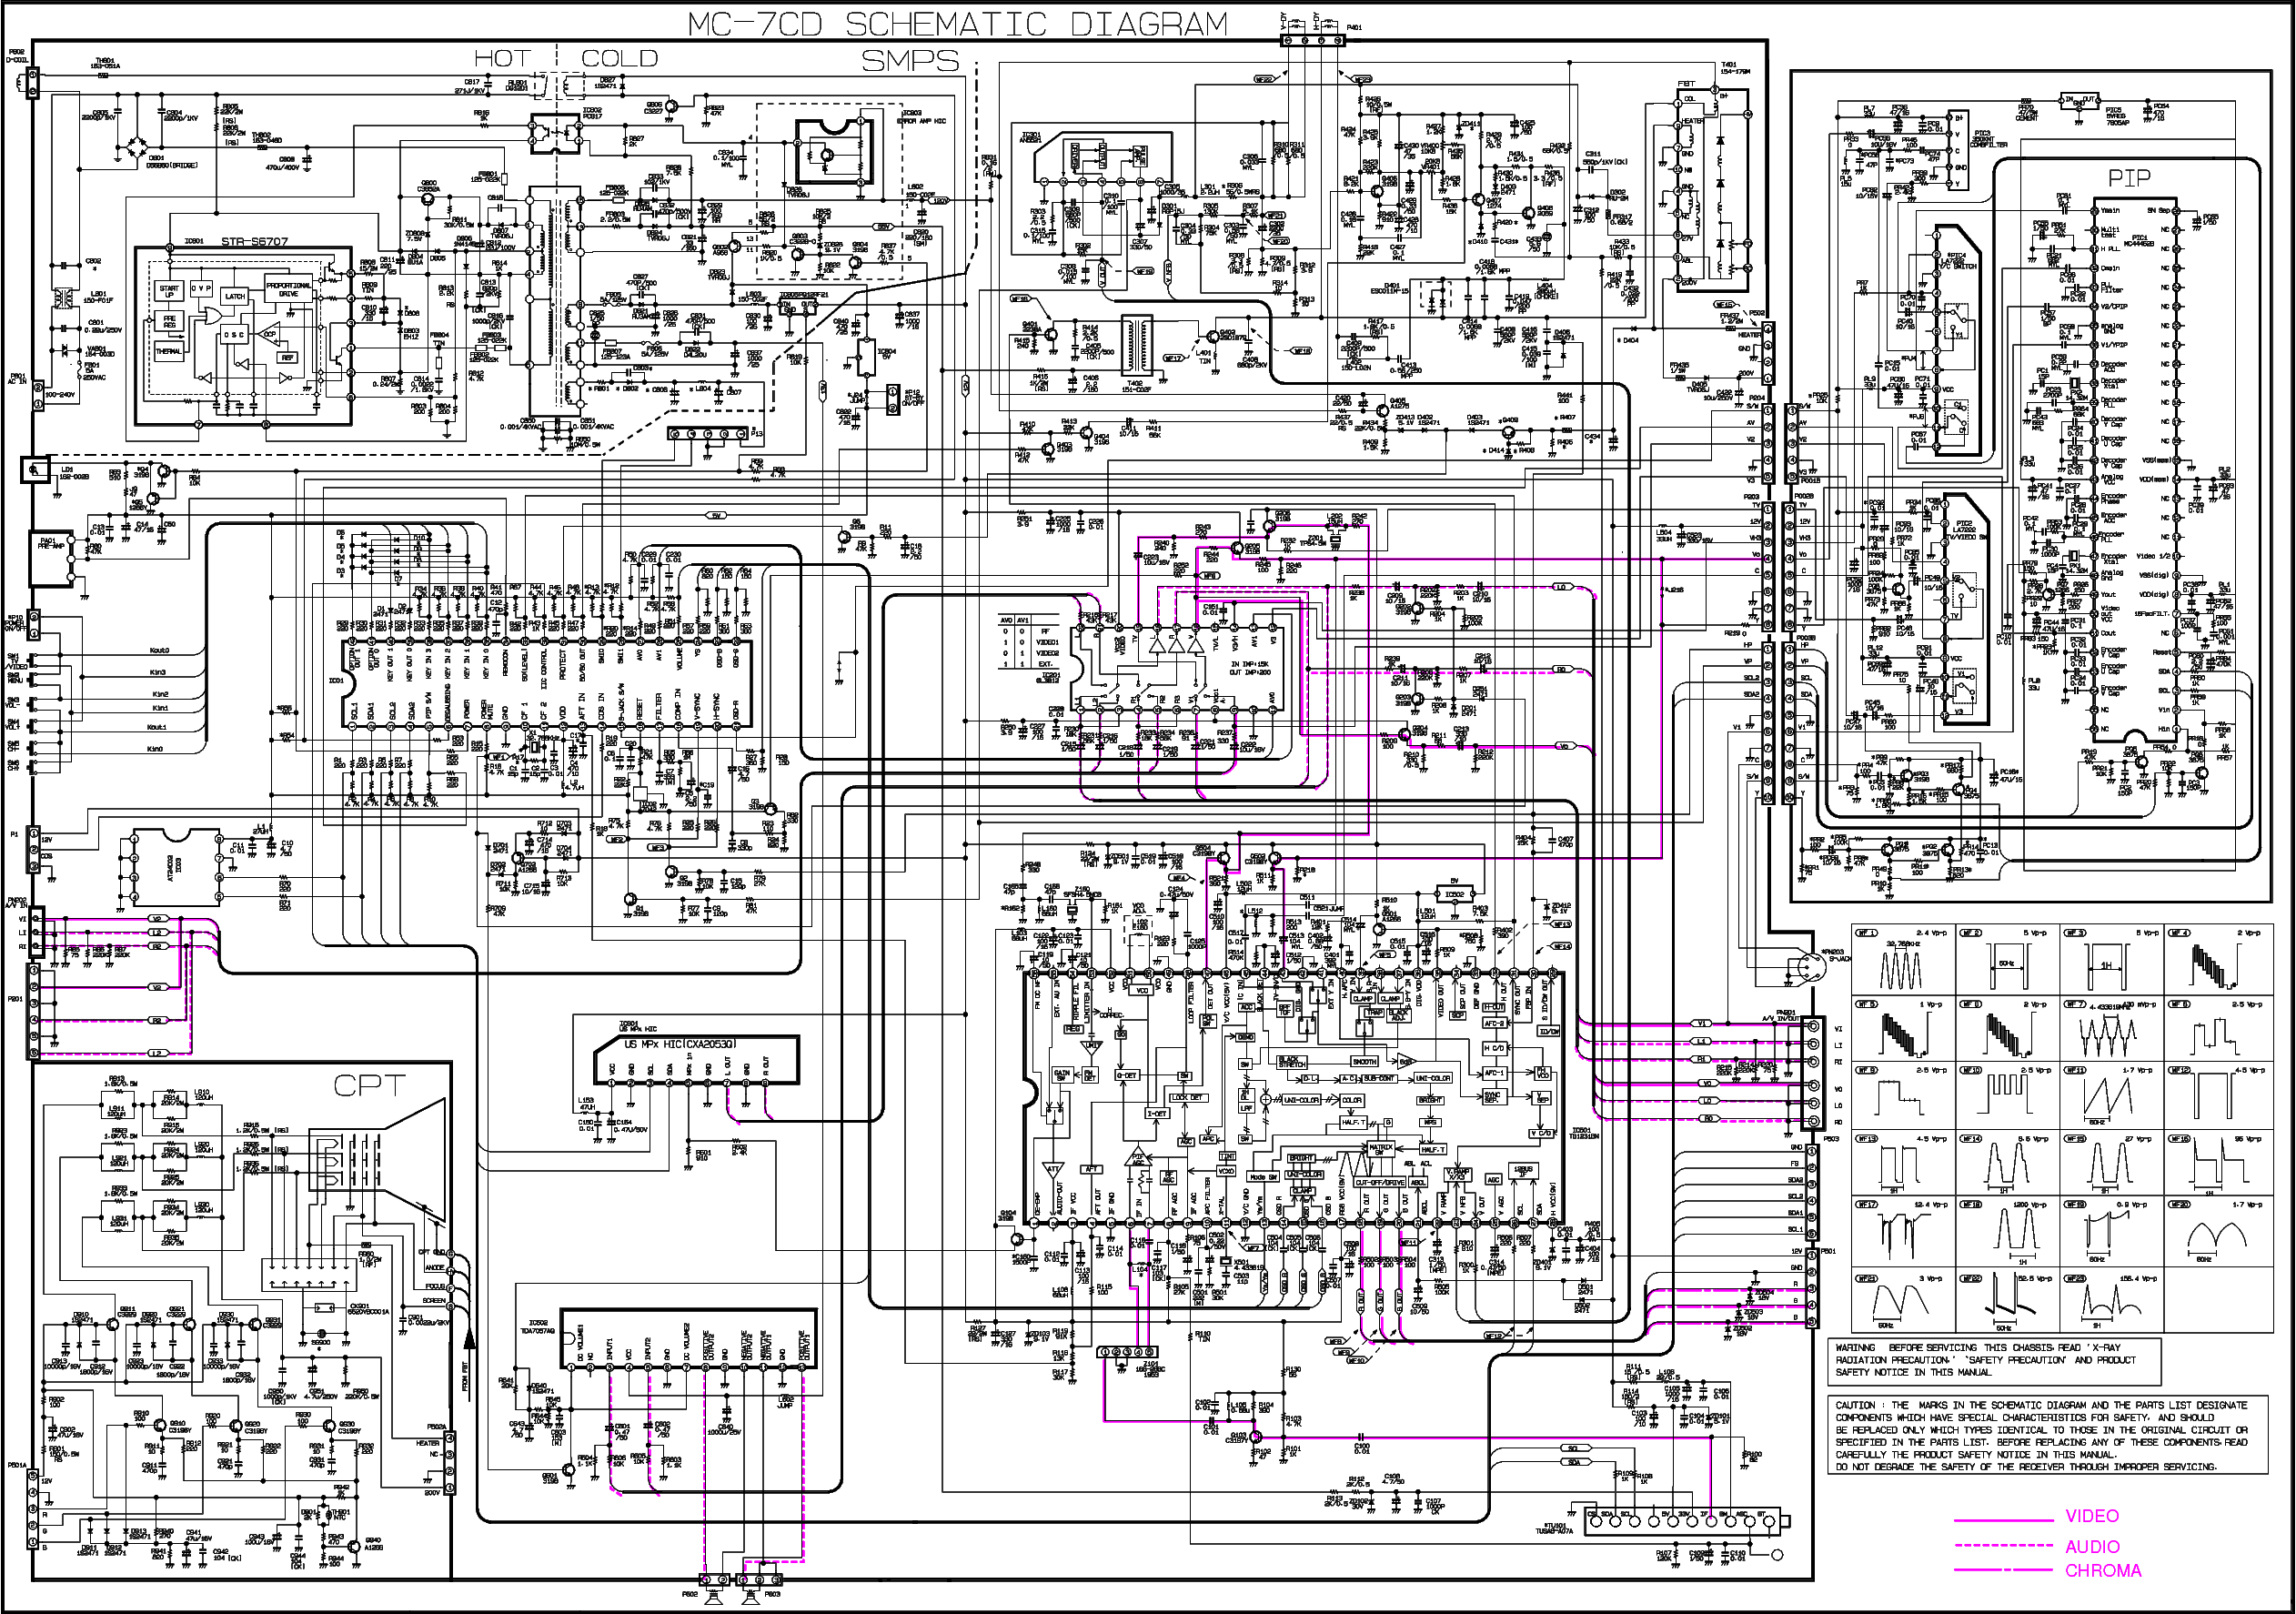 Lg Tv Diagram Basic Wiring Schematic Schematics Diagrams U2022 Rh Seniorlivinguniversity Co Plasma Kit